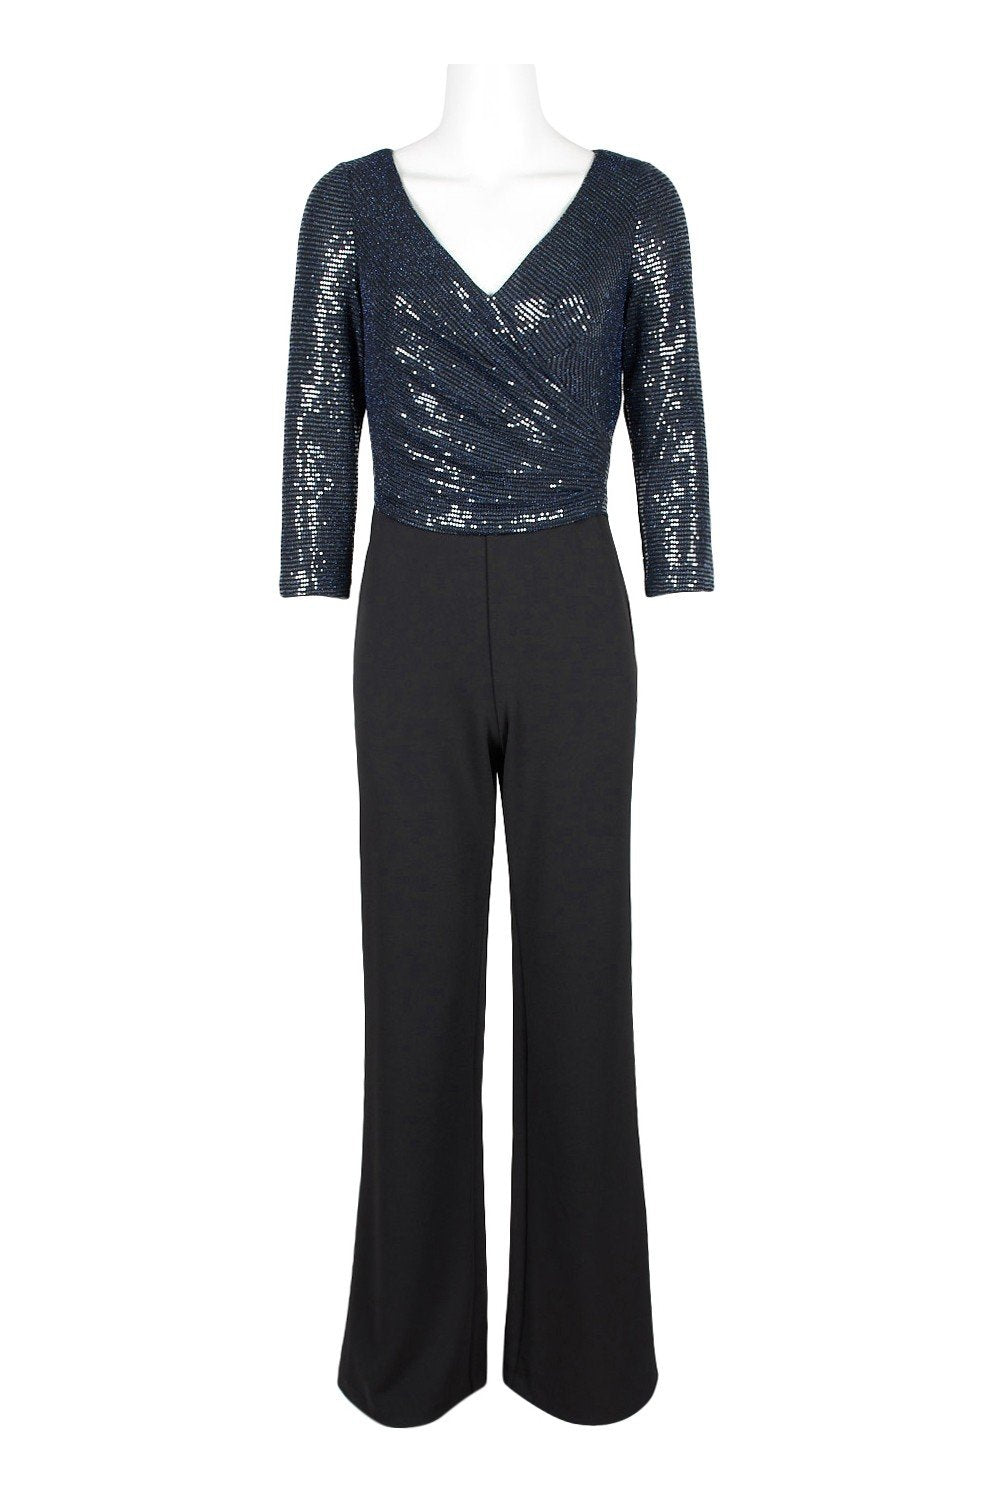 Adrianna Papell - AP1E206289 Sequined Quarter Length Sleeve Jumpsuit In Blue and Black